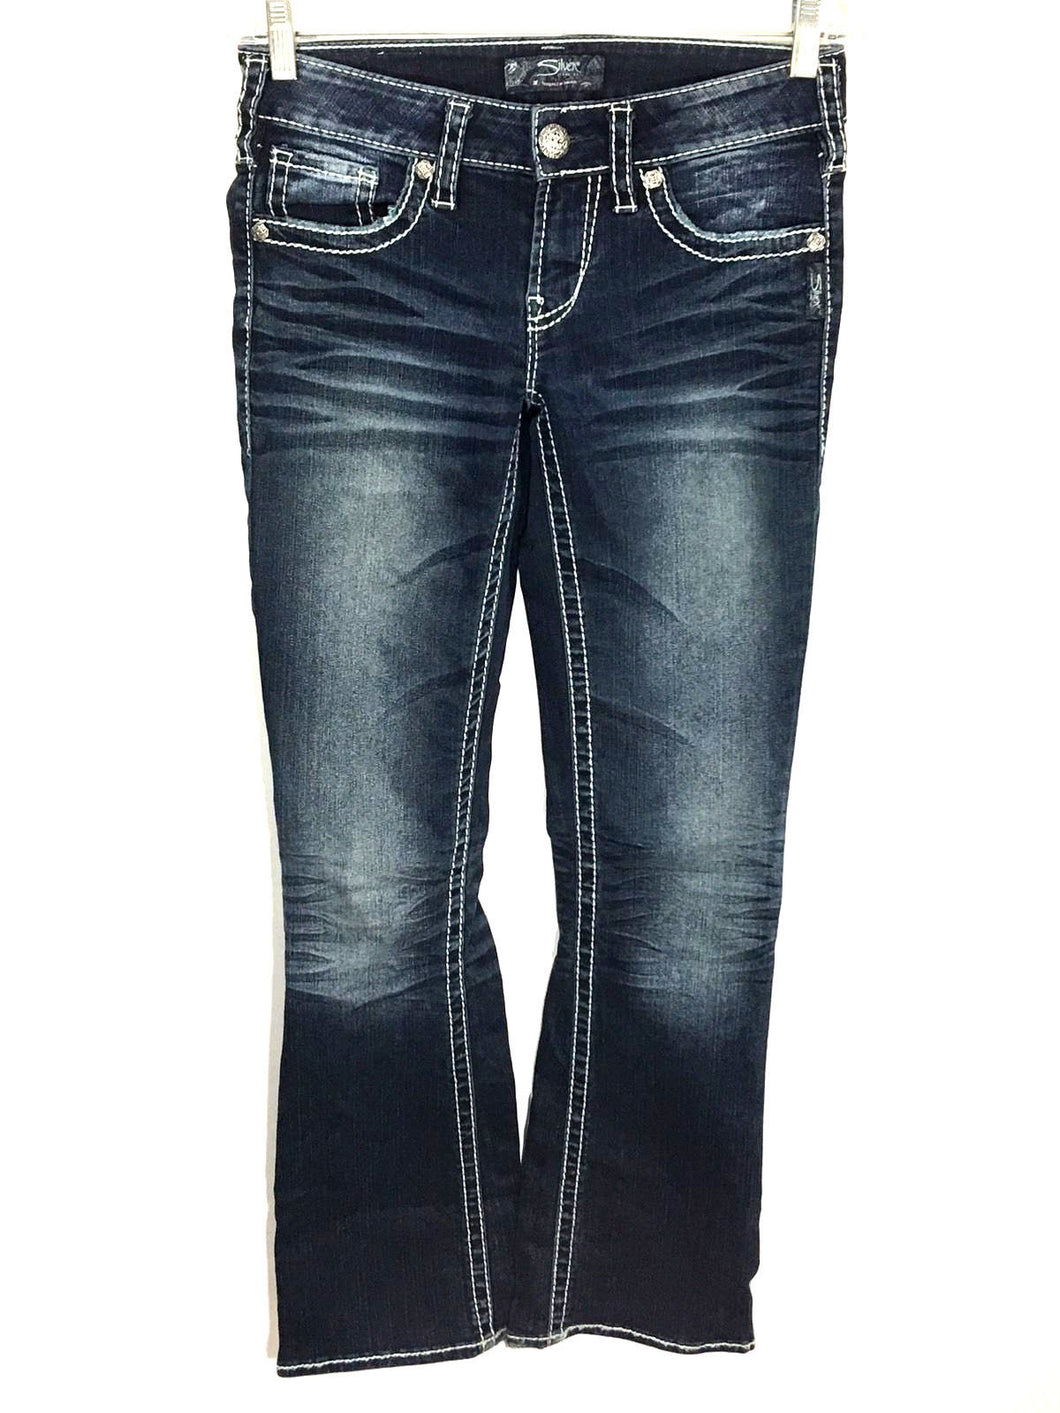 Silver Jeans Aiko Boot Cut Dark Wash Thick Stitch Women's 26 x 31 Actual 26x30 - FunkyCrap Boutique